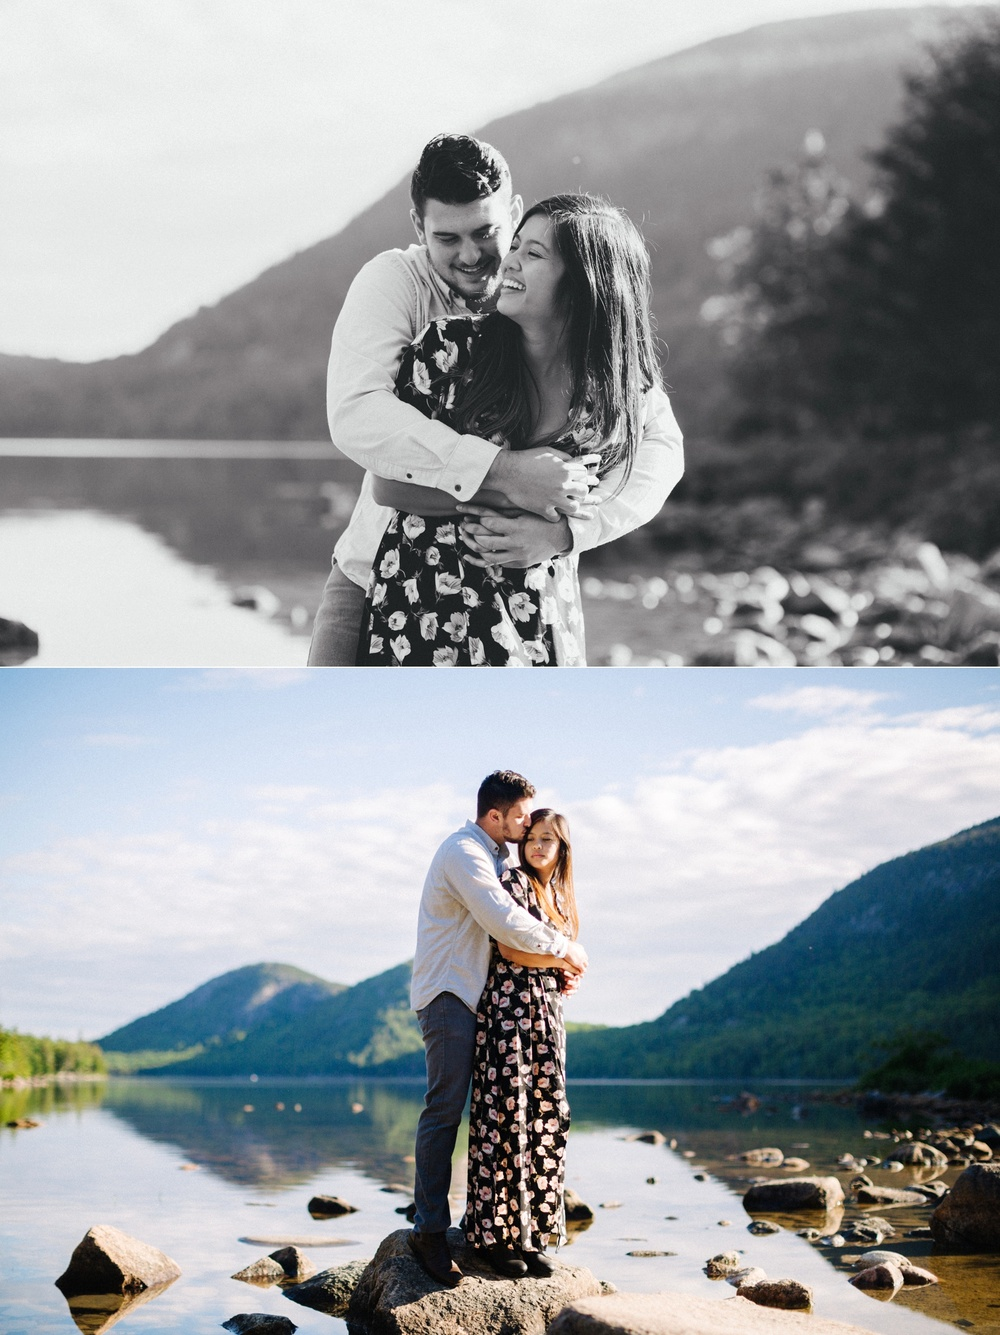 jake and jill acacdia national park engagement session cadillac mountain engagement session jordan pond engagement session maine engagement session jake and katie_0025